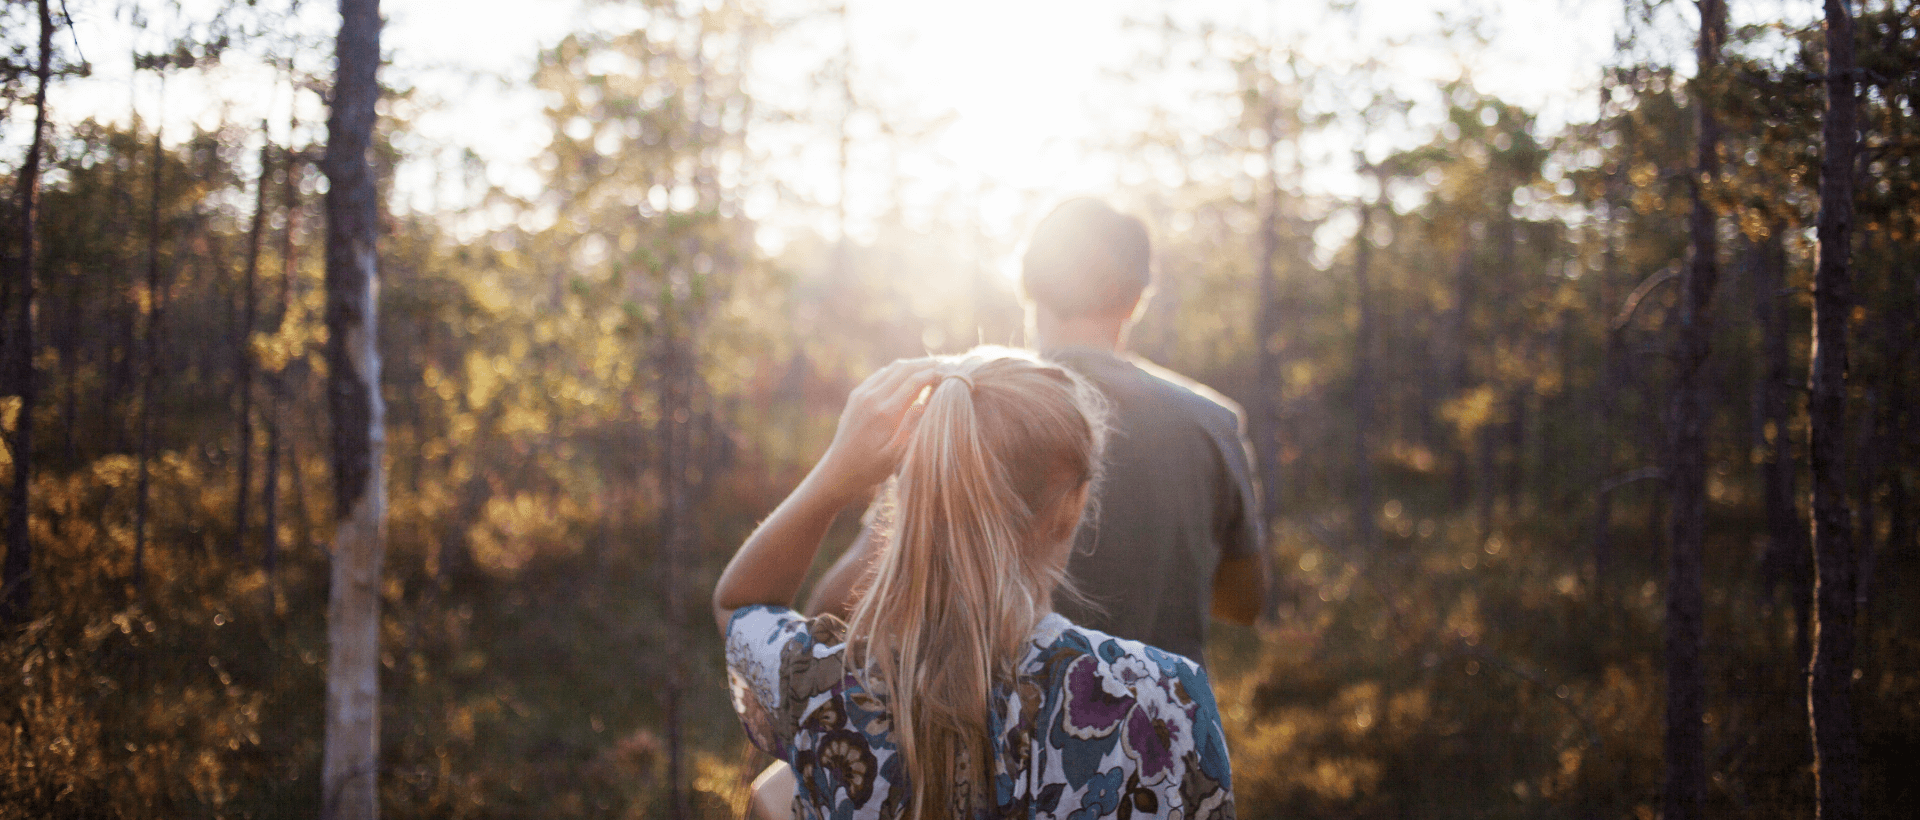 A young woman following a young man into the forest, summery atmosphere and sunshine, rear view